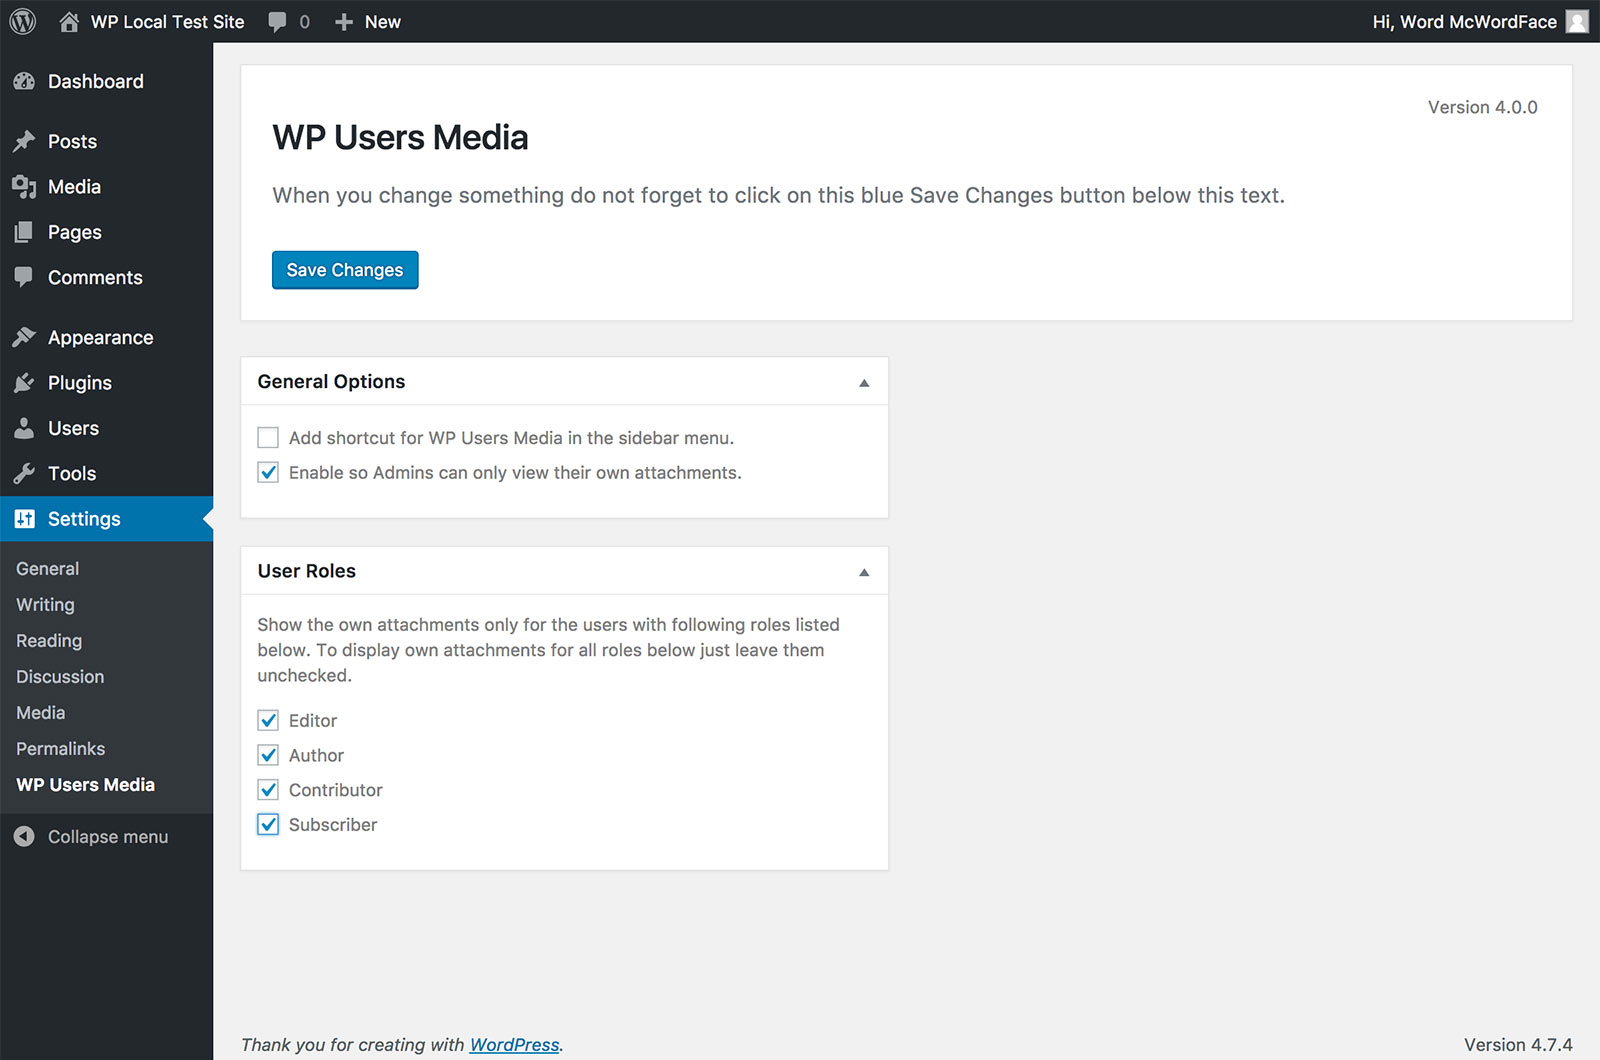 Screenshot showing the settings screen for the WP User Media plugin